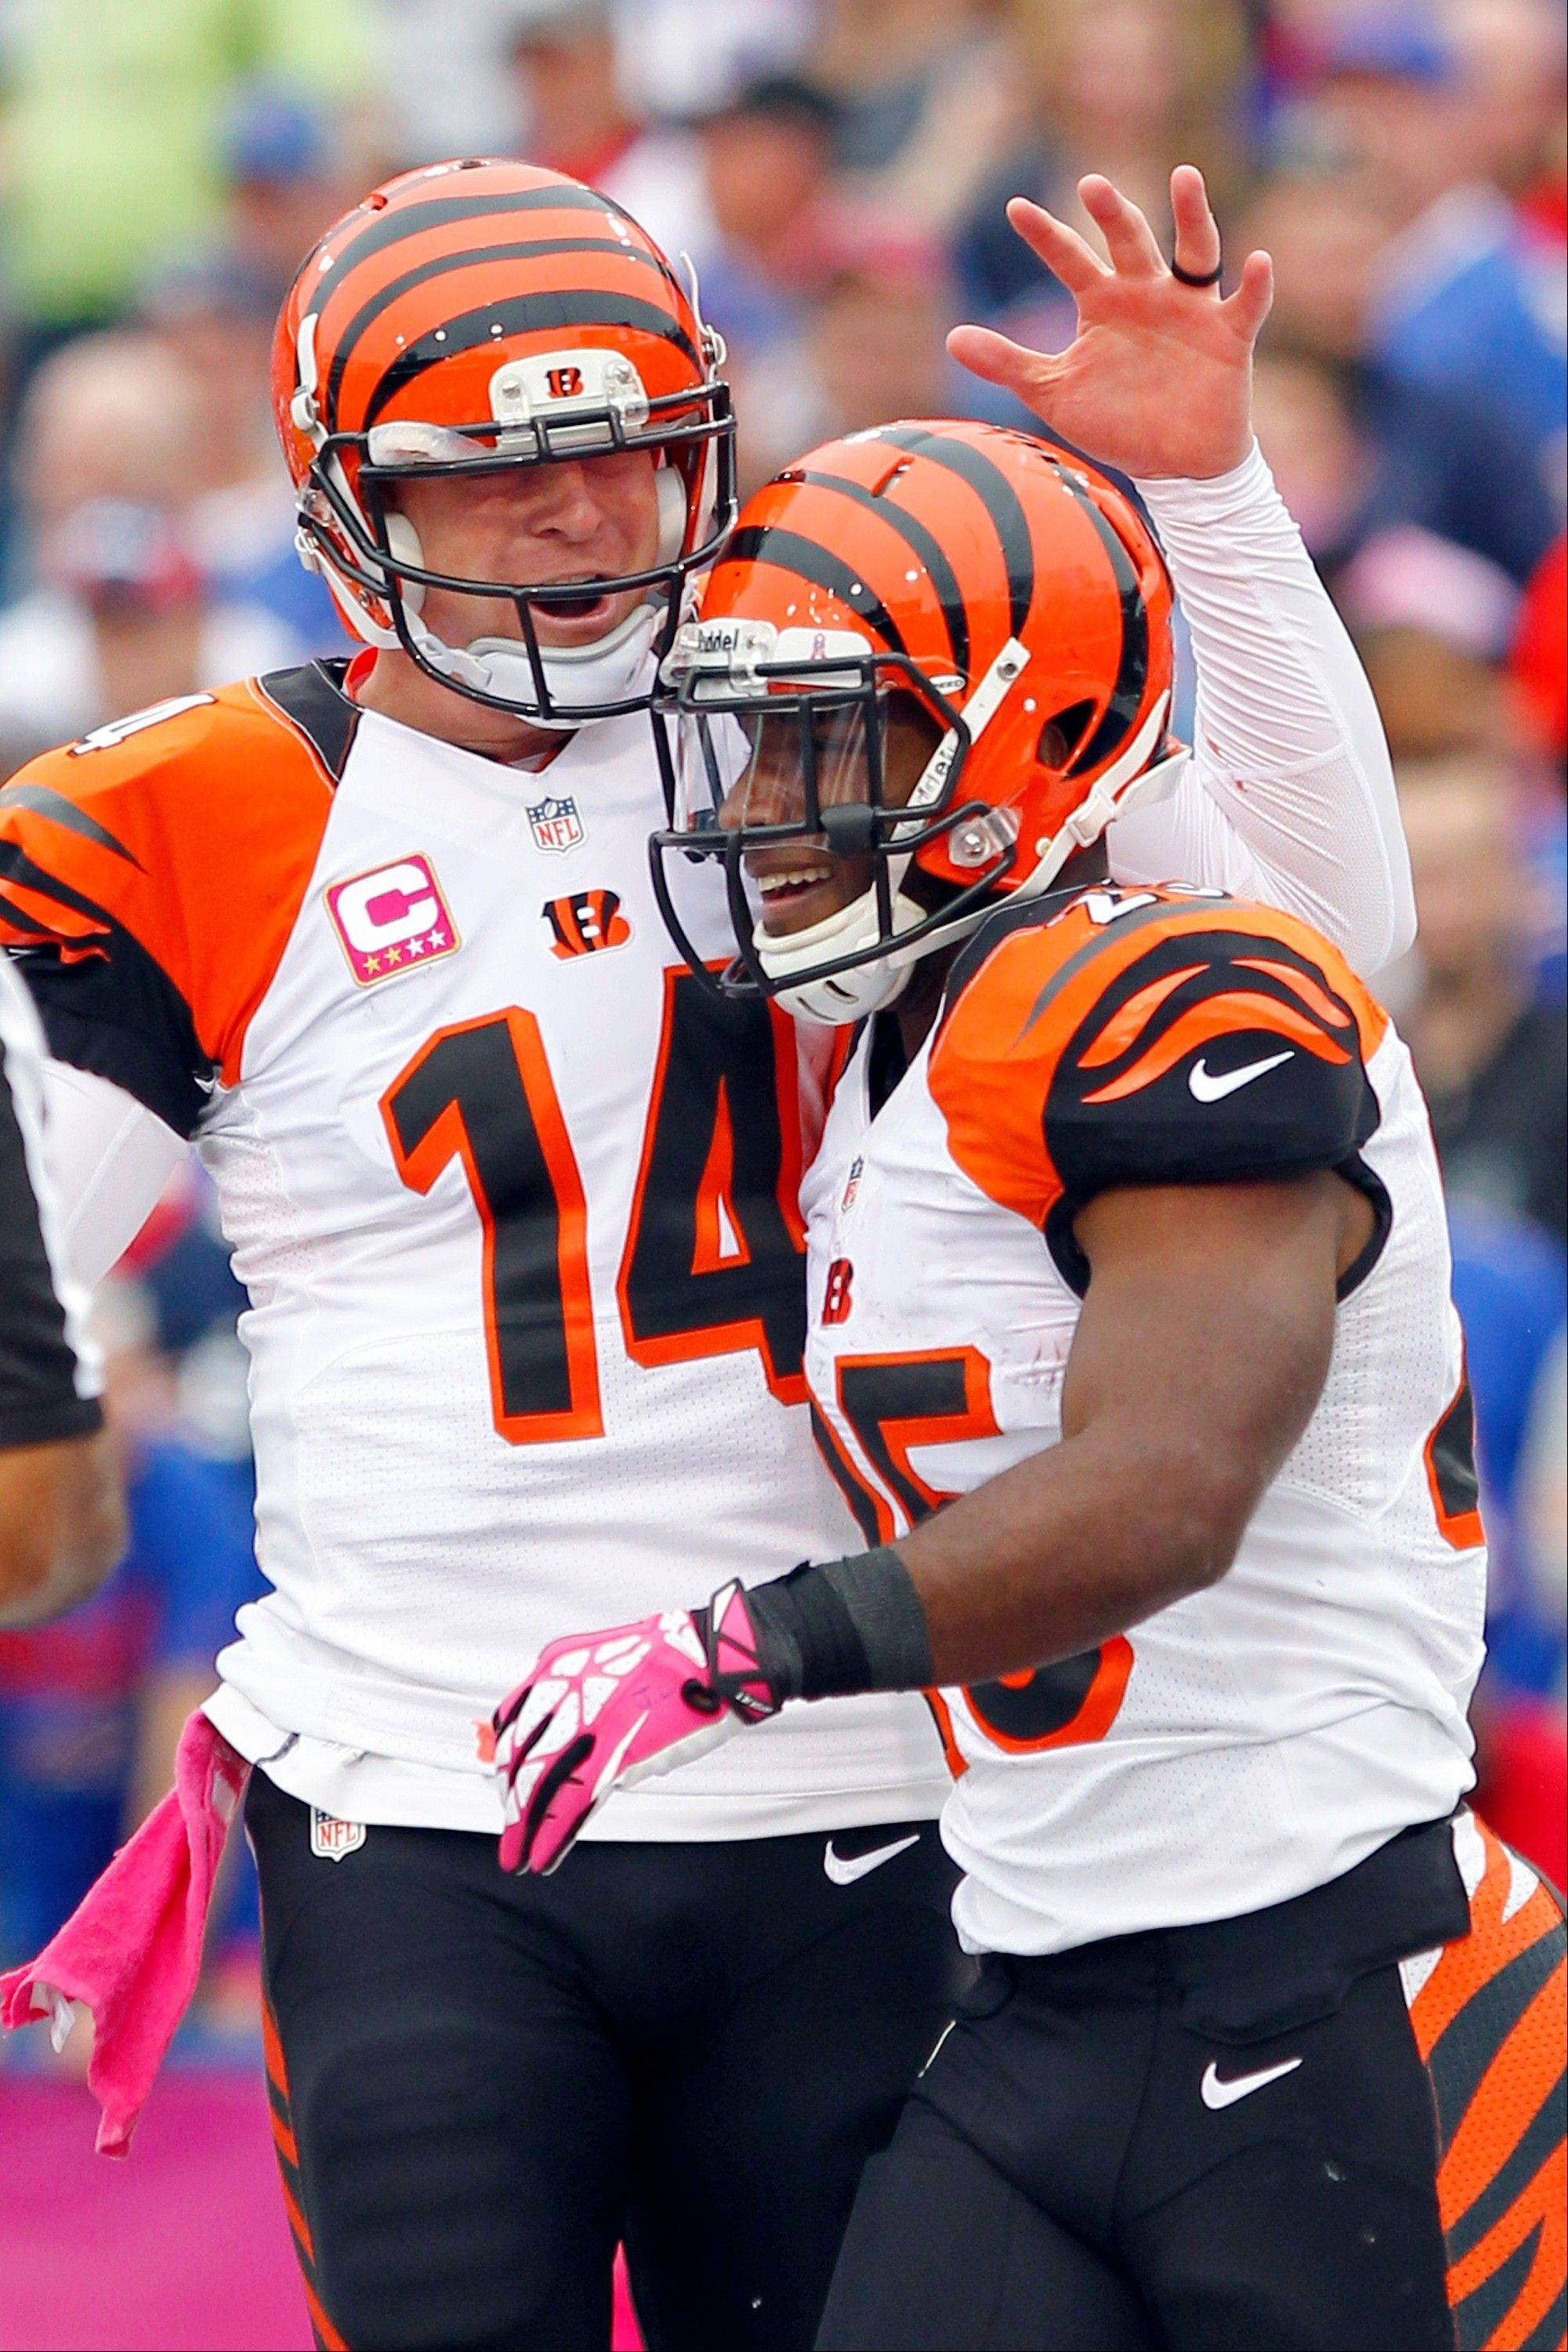 Cincinnati Bengals running back Gio Bernard (25) is greeted by quarterback Andy Dalton (14) after scoring against the Buffalo Bills in the third quarter of Sunday�s game in Orchard Park, N.Y.